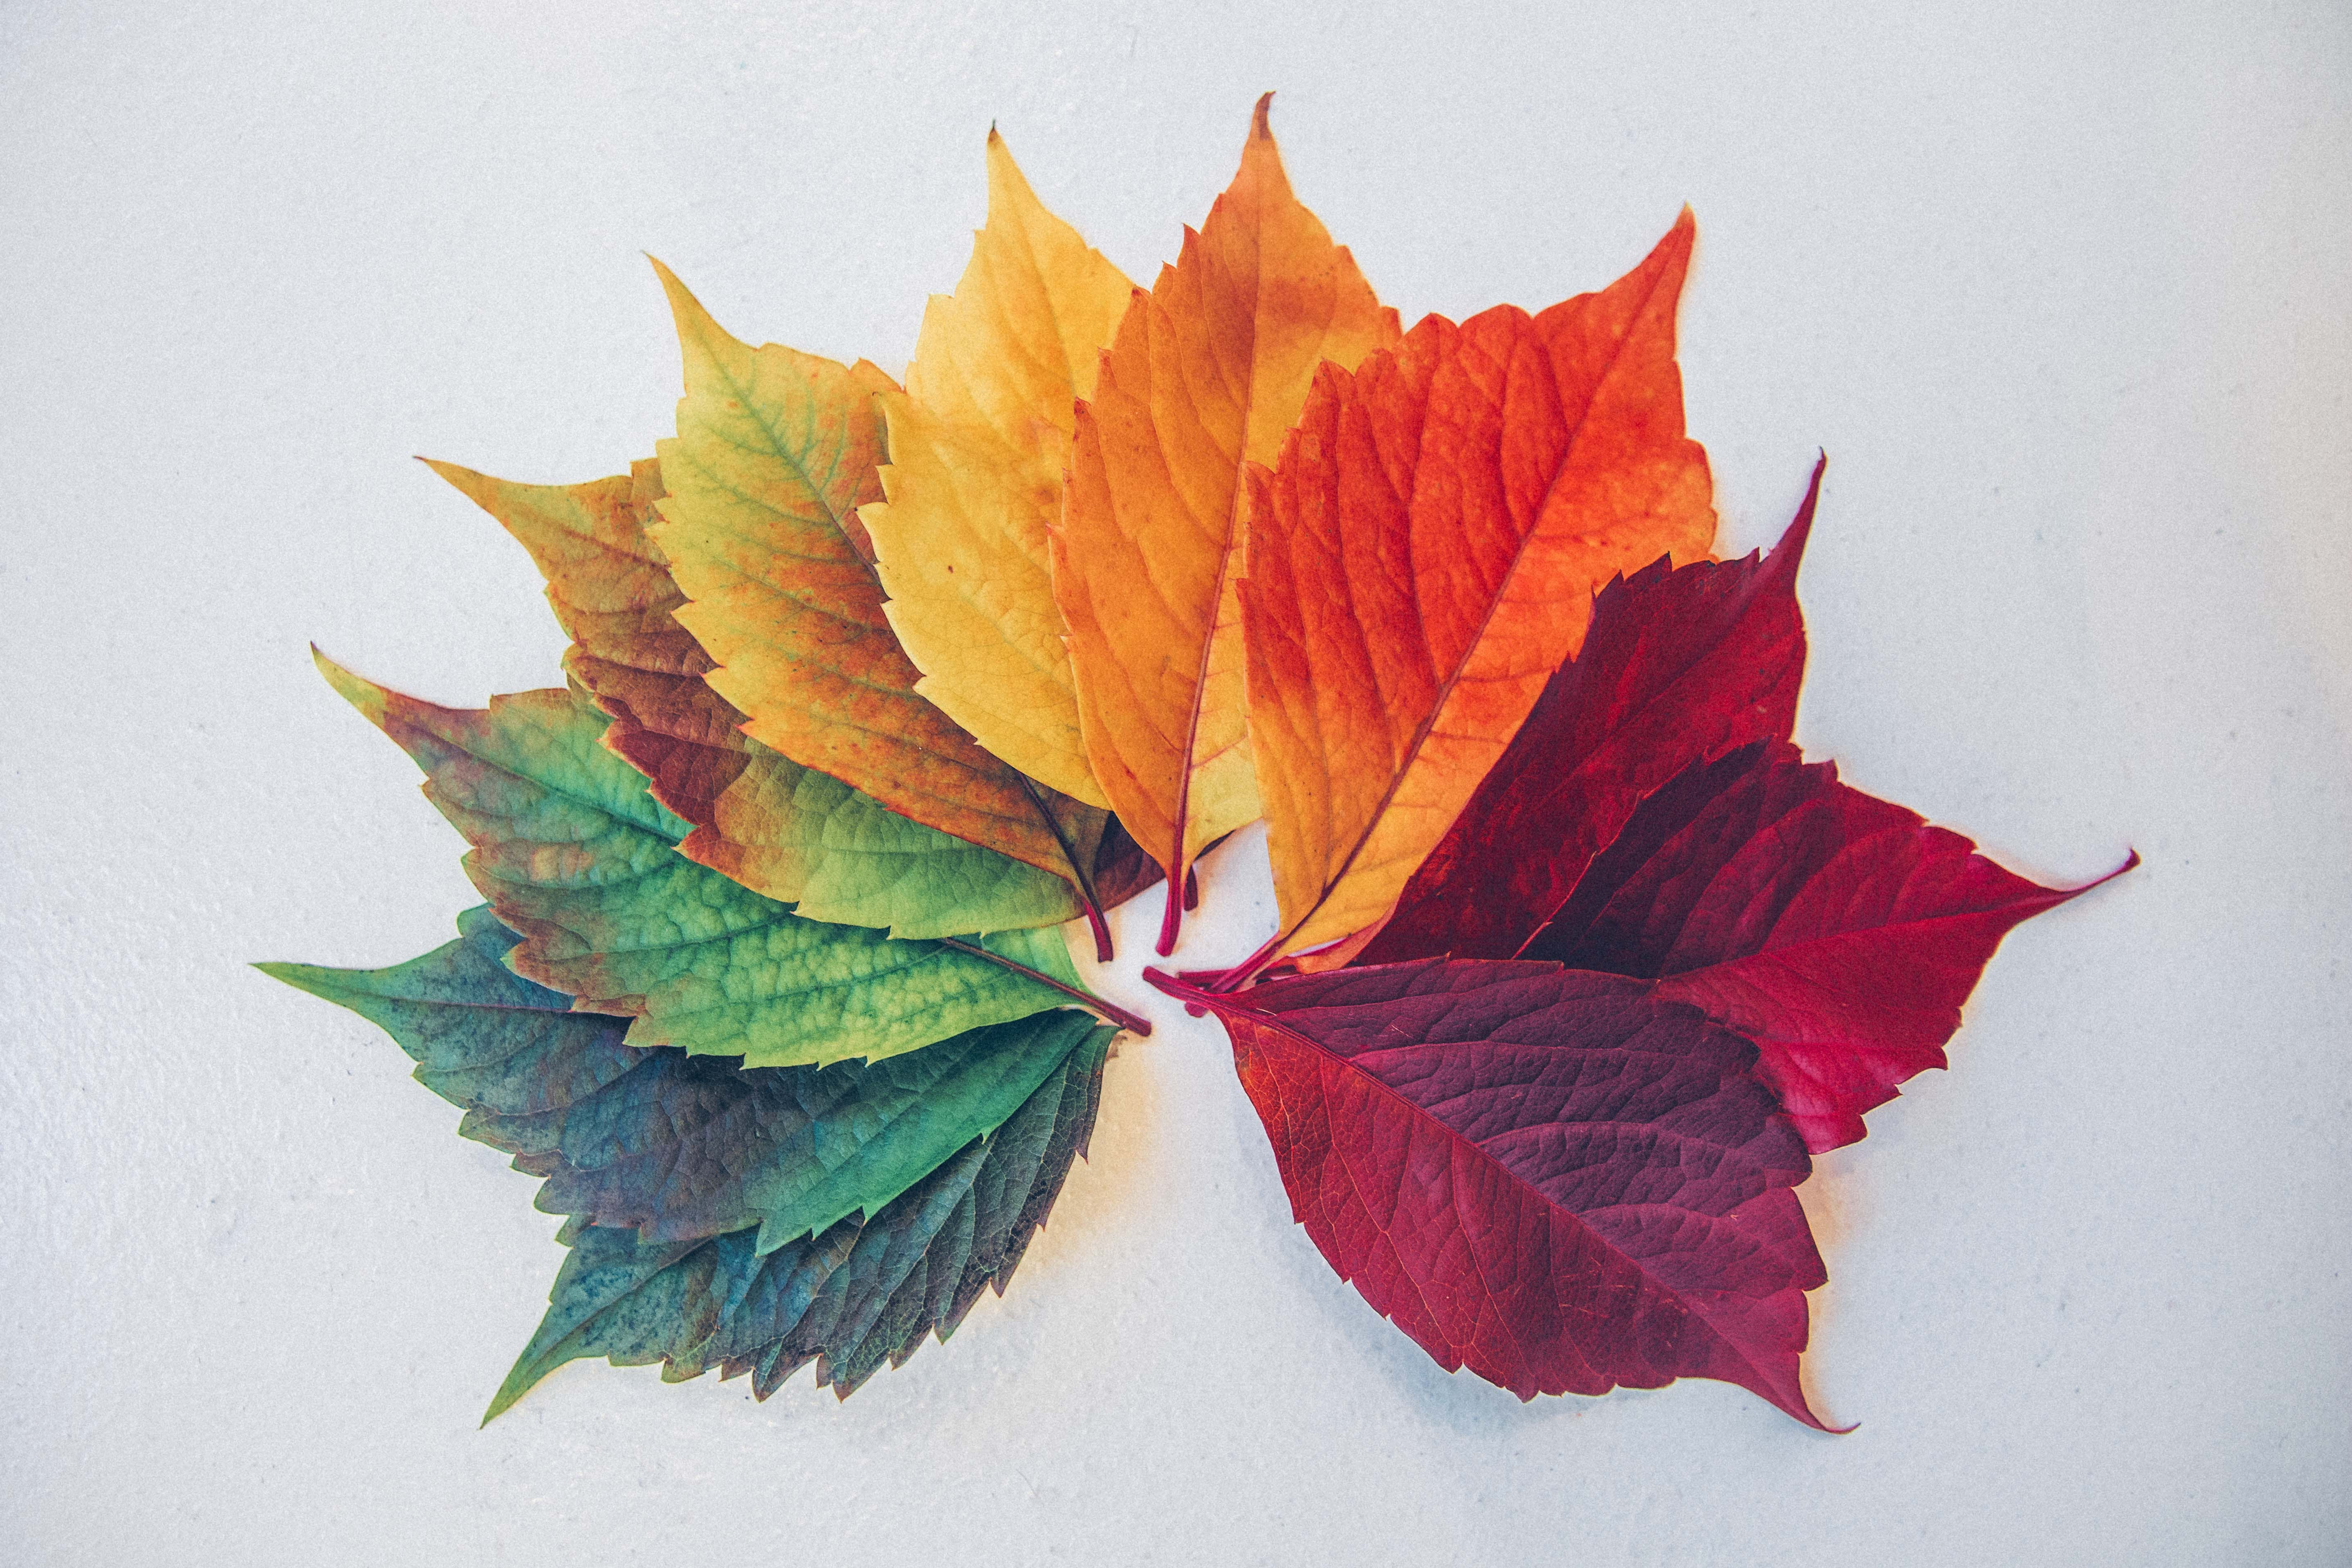 An array of colorful leaves, representing marketing seasonality.